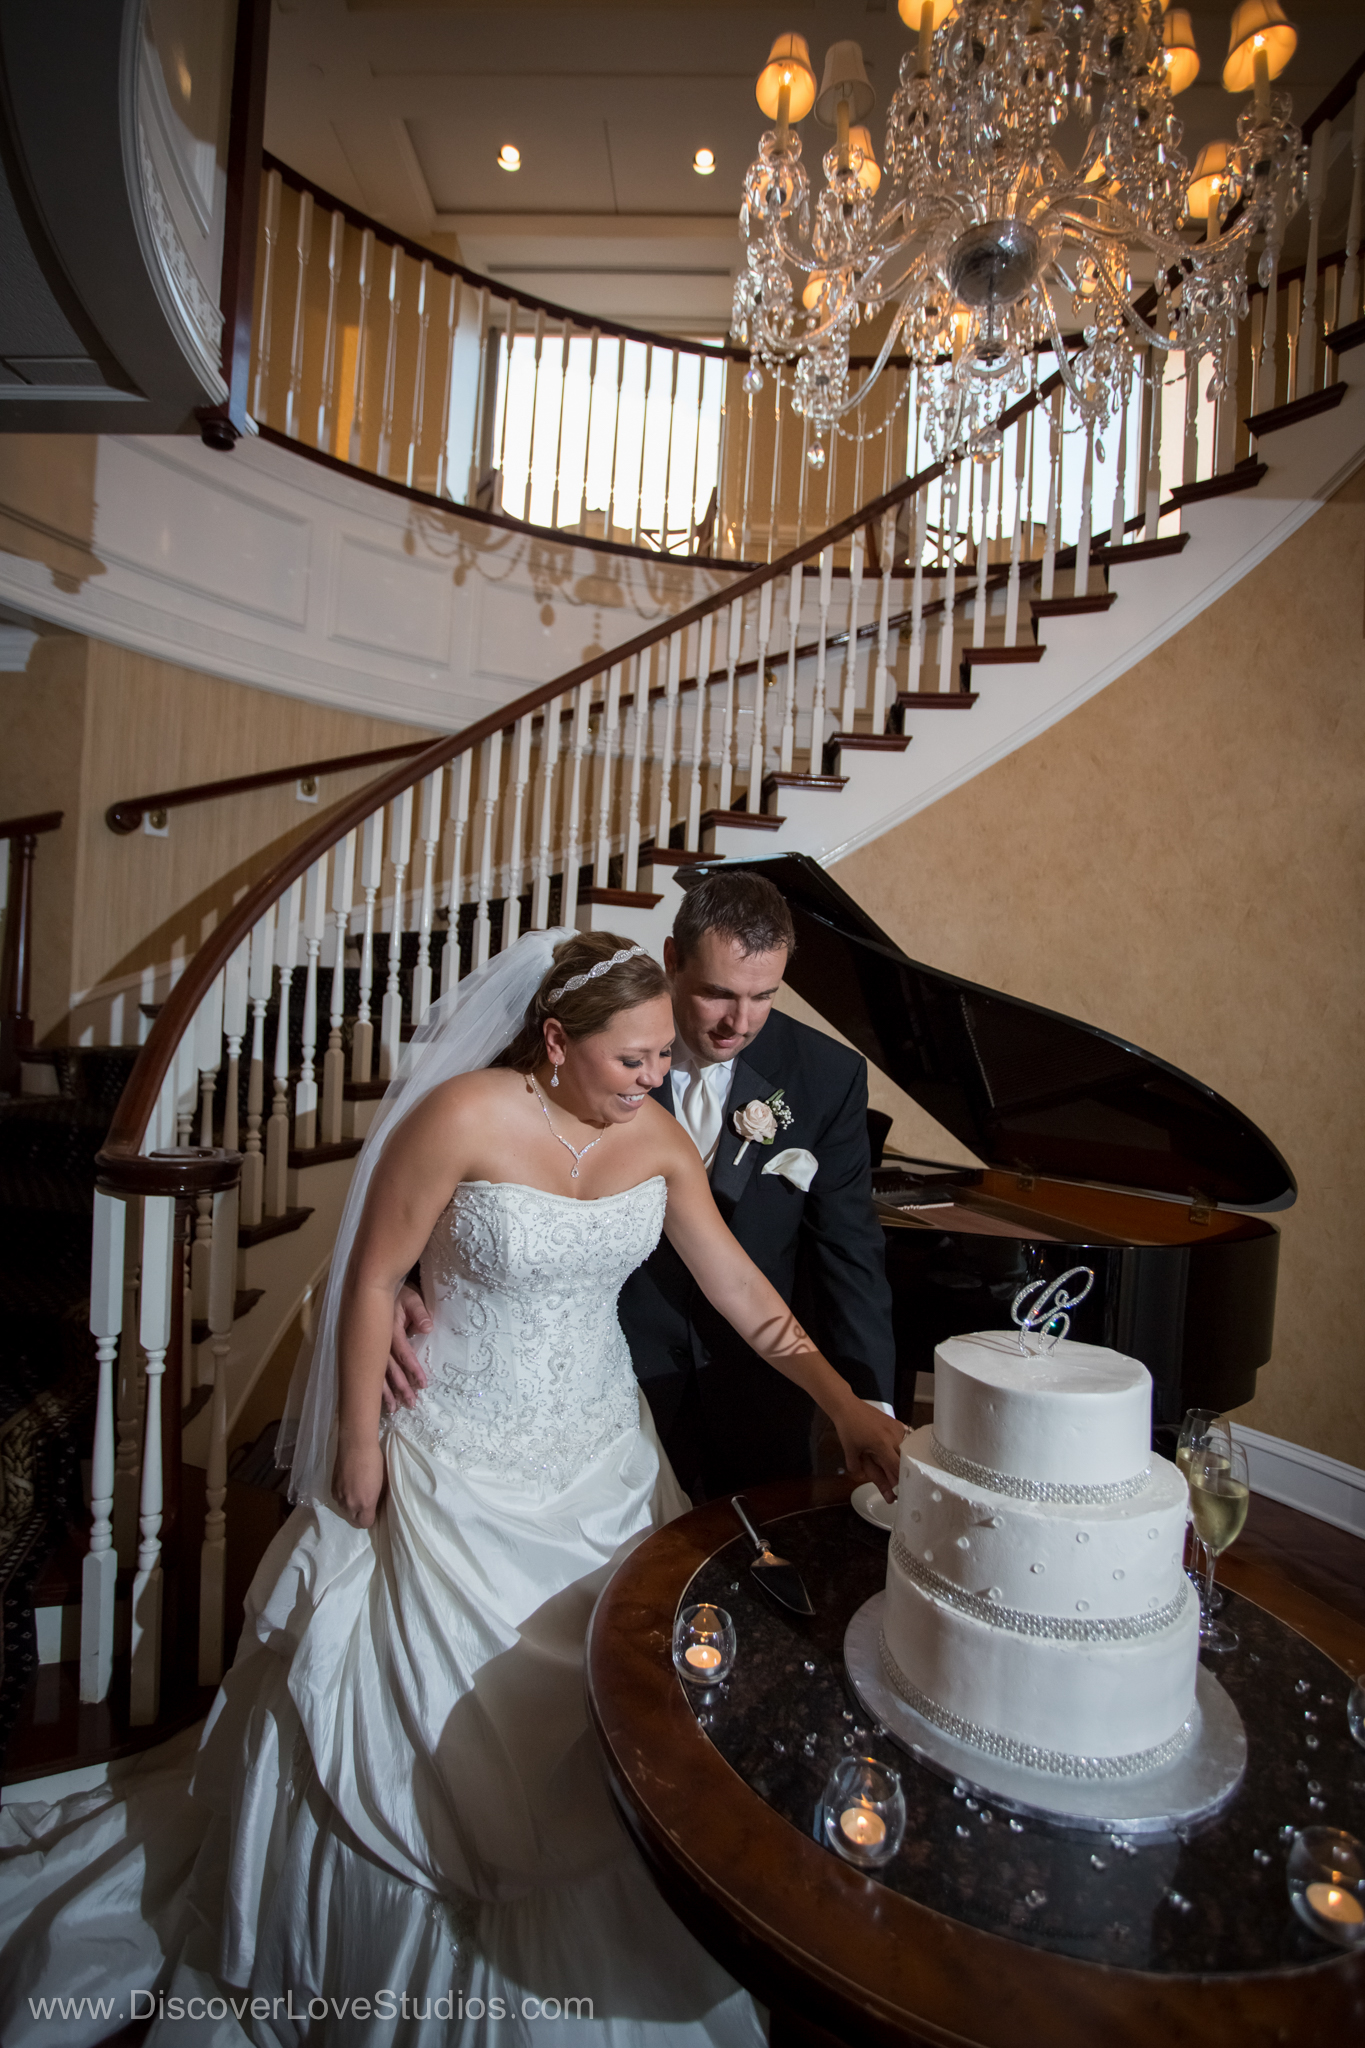 Bride and groom standing near the ornate staircase with a grand piano cutting into their wedding cake.